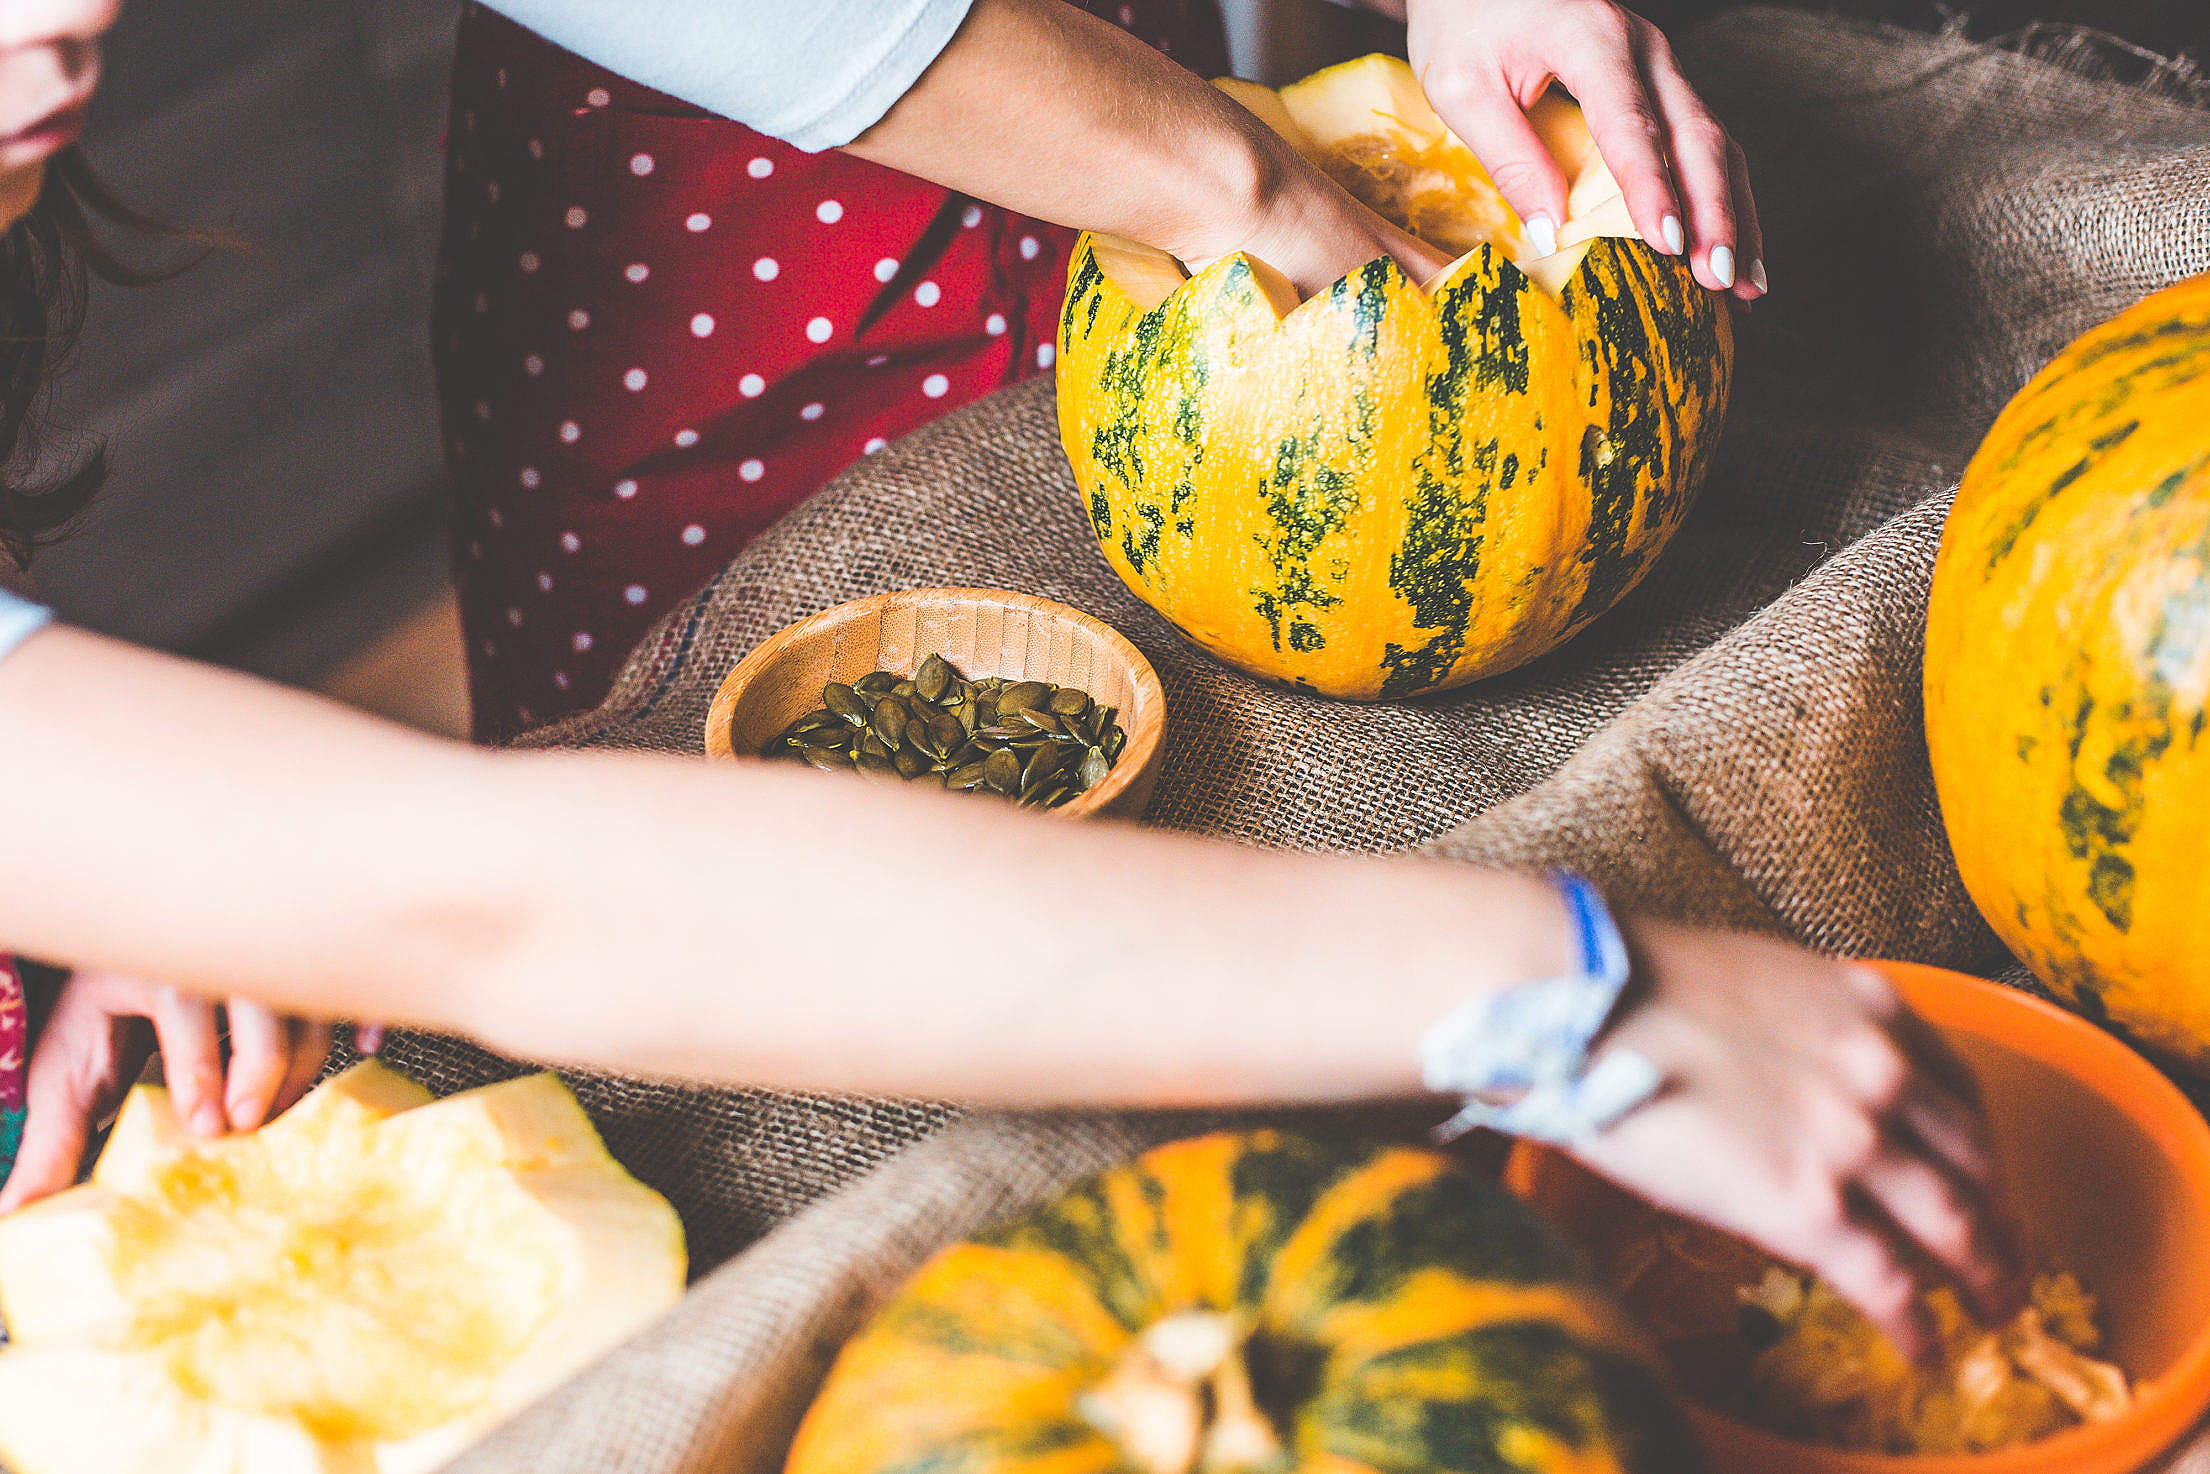 Family Time: Preparing and Carving Halloween Pumpkins Free Stock Photo